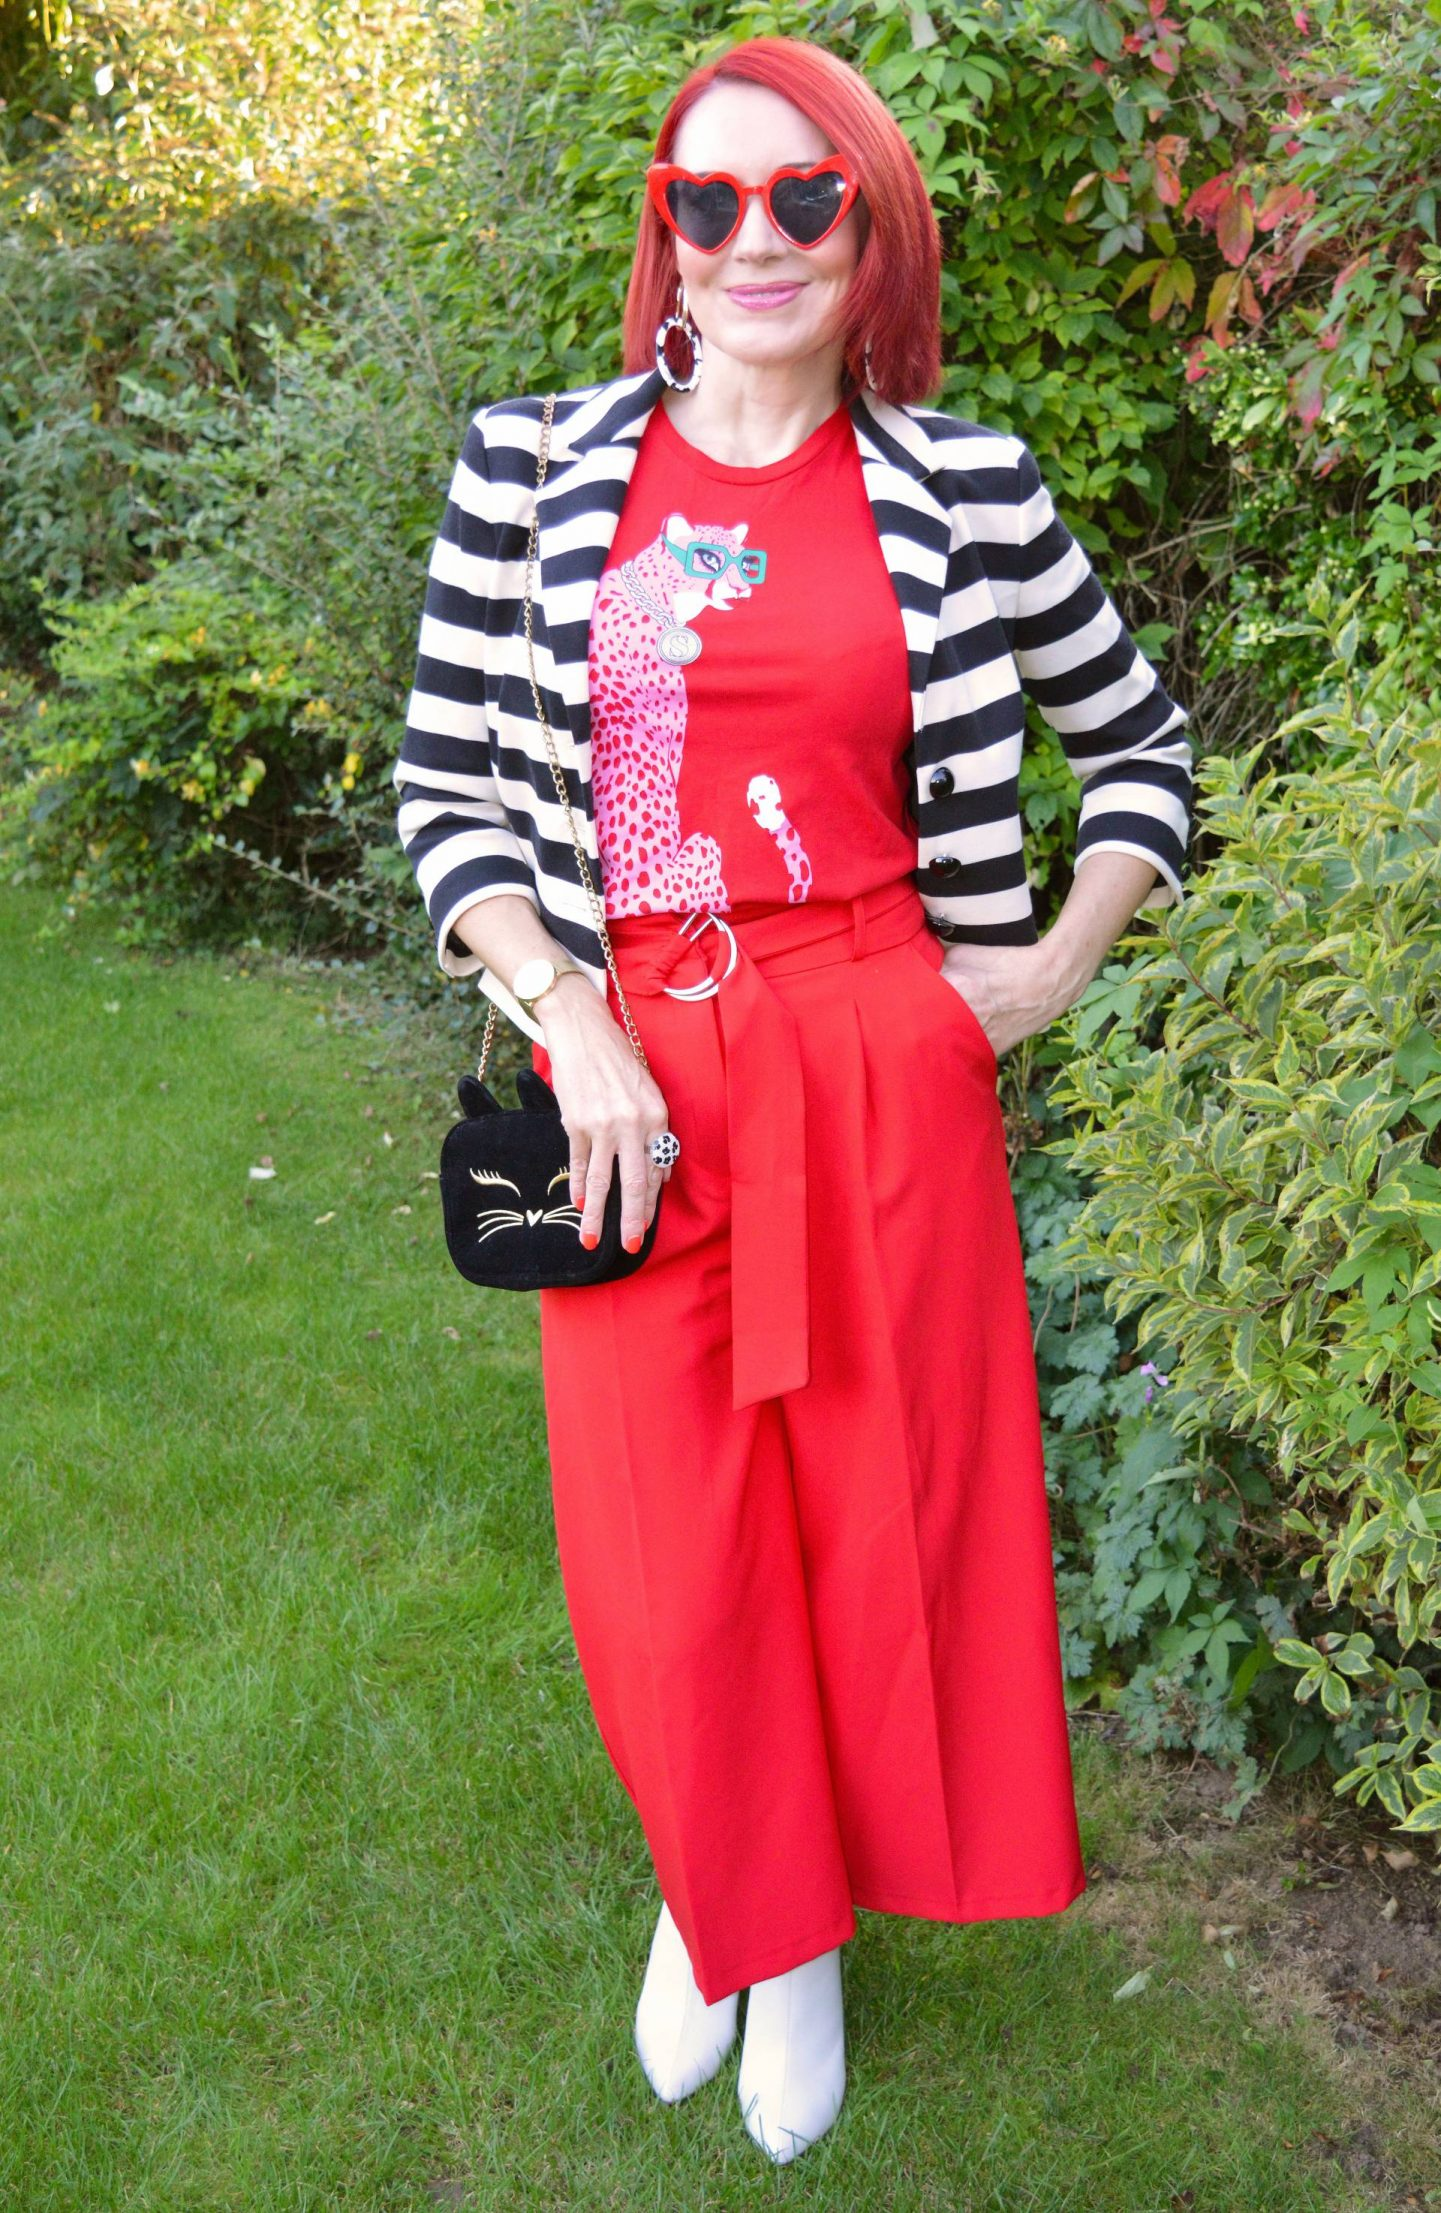 Simply Stripes - September's Thrifty Six, Marks & Spencer black and white striped jacket, Asos red culottes, Soul Sisters red cheetah T-shirt, River Island white shoe boots, red heart sunglasses